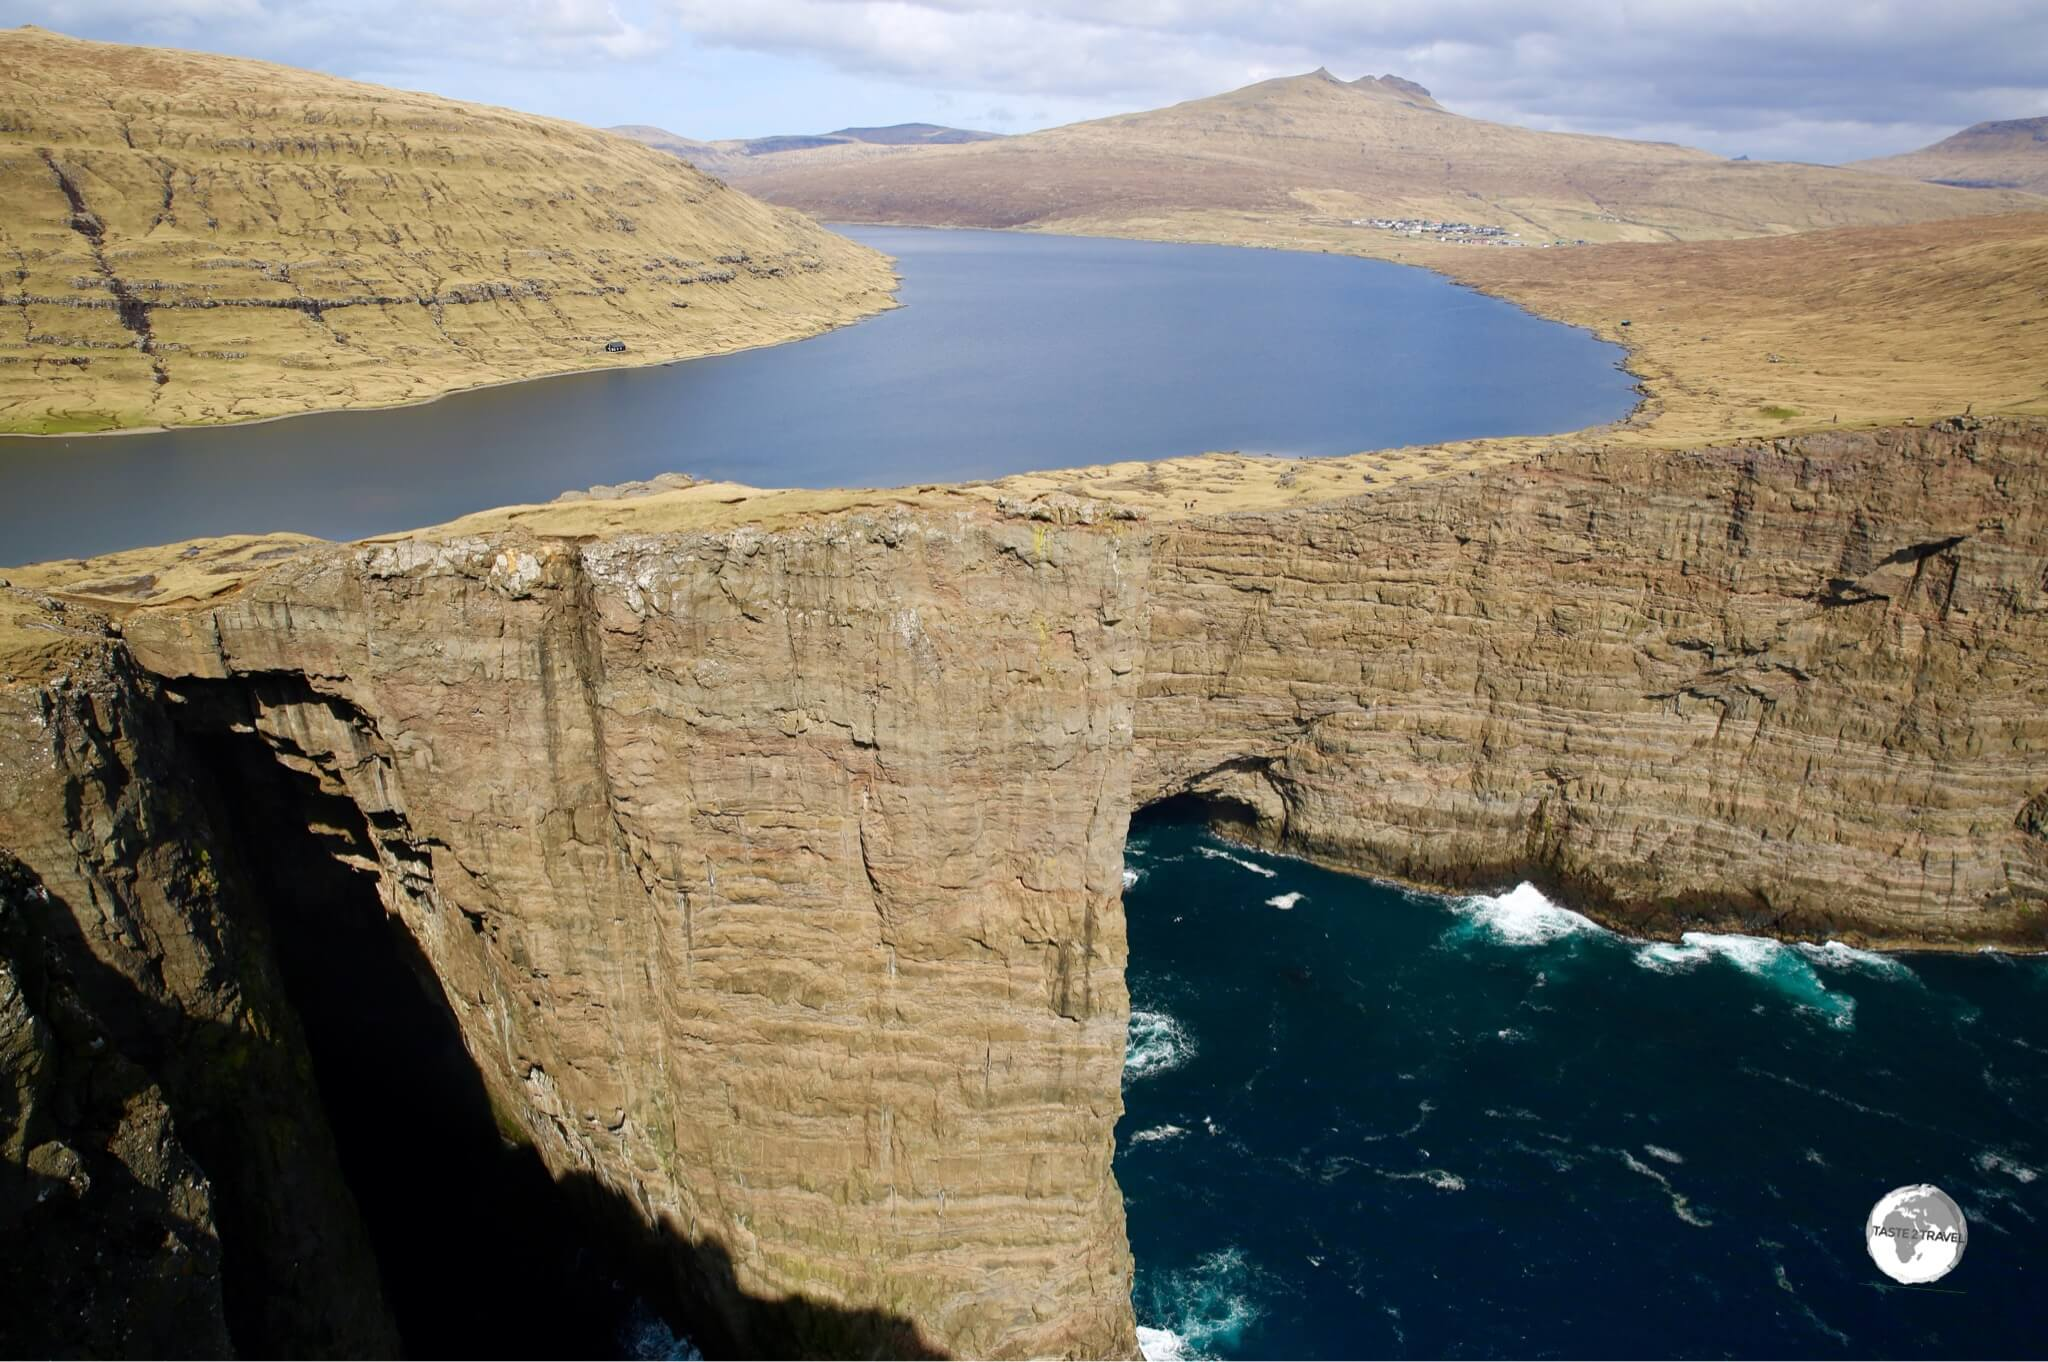 An incredible sight - Sørvágsvatn (the largest lake in the Faroes) seems to float above the sea.